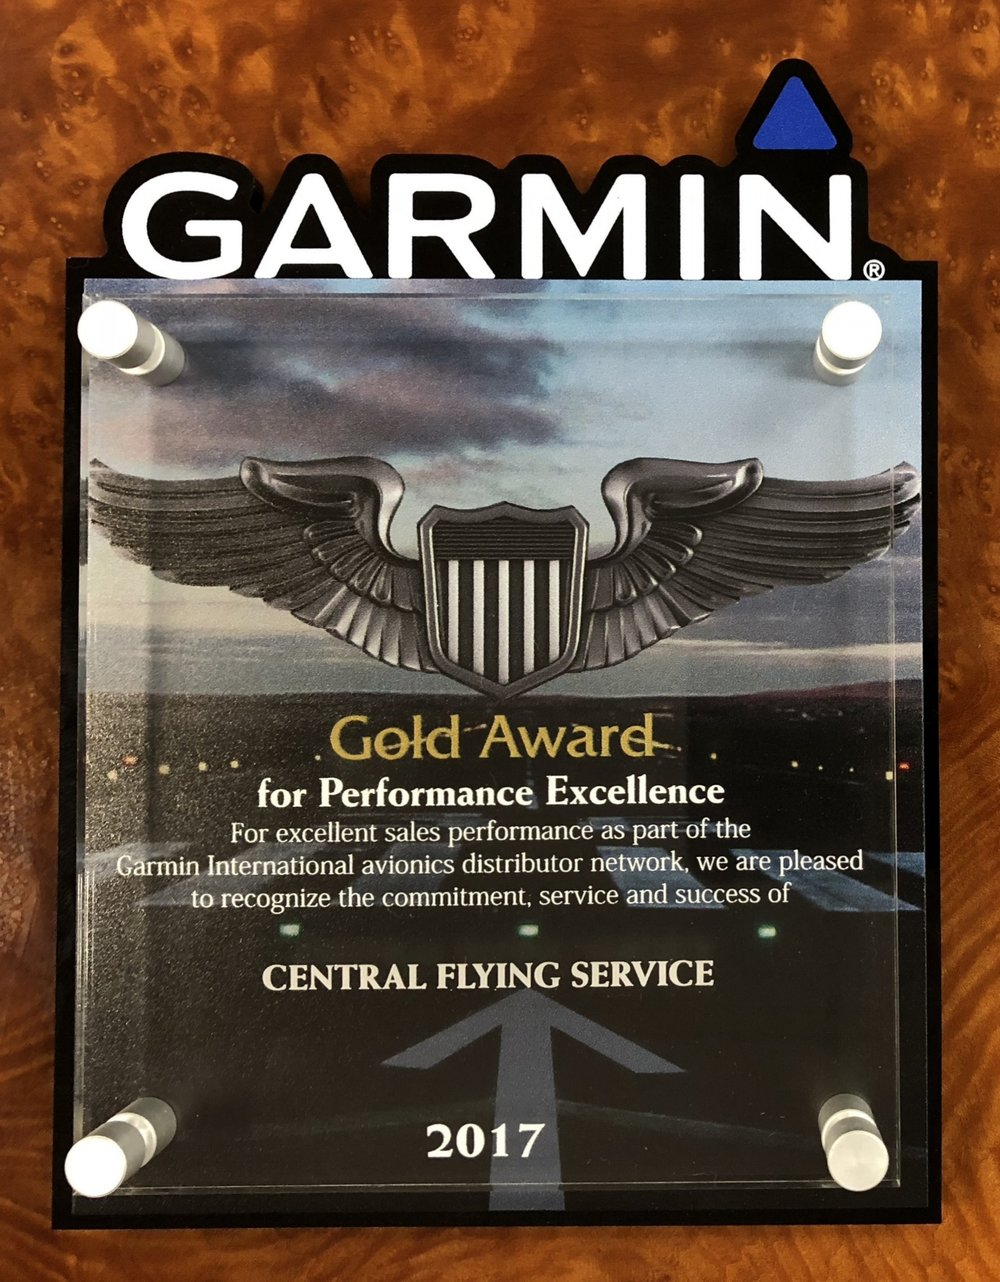 One of Garmin's most prestigious awards: Central's Award Winning Avionics Shop lands in the Top 10% of Garmin Distributors Worldwide.